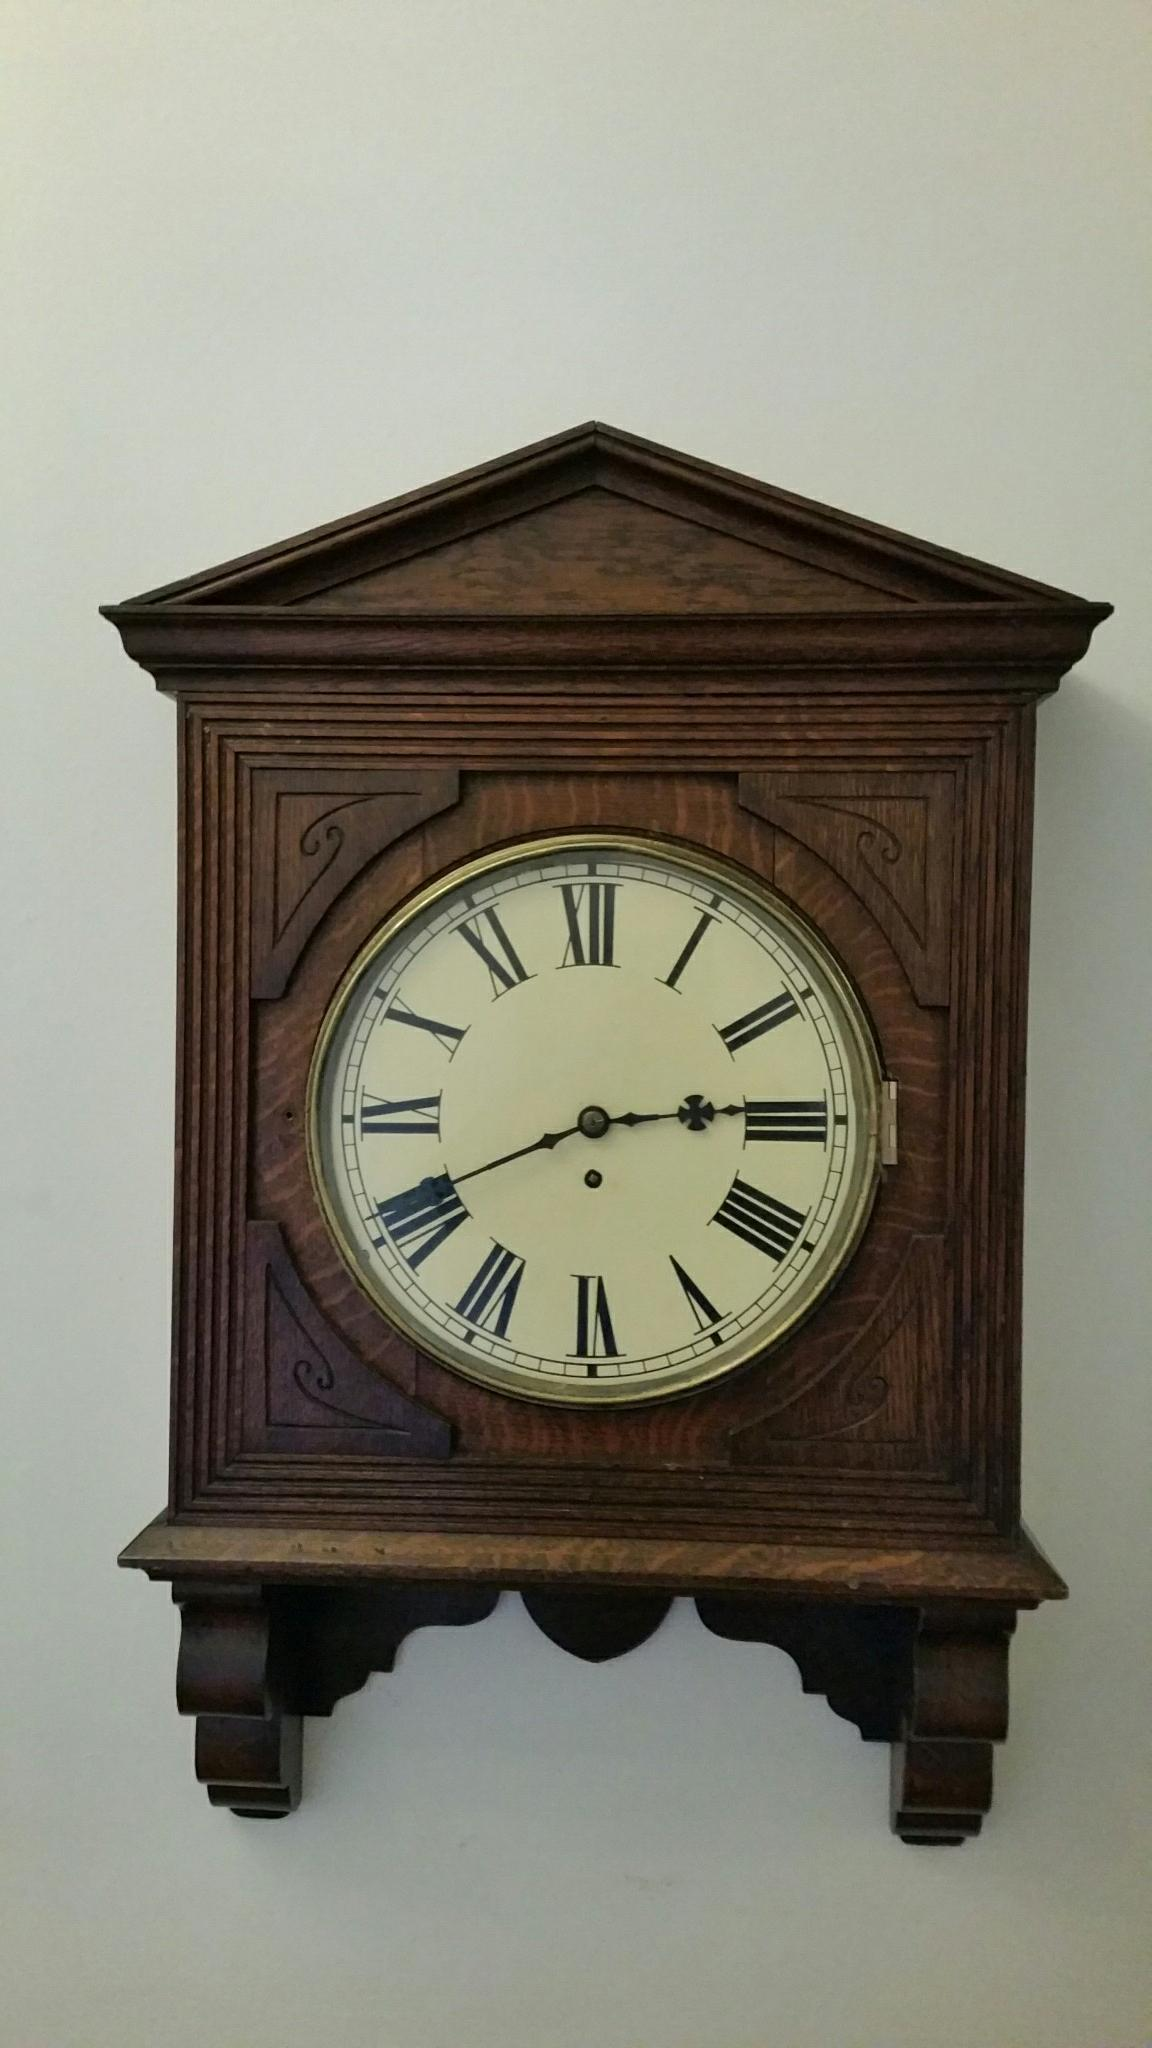 Antique Clock For Sale In Uk 98 Used Antique Clocks